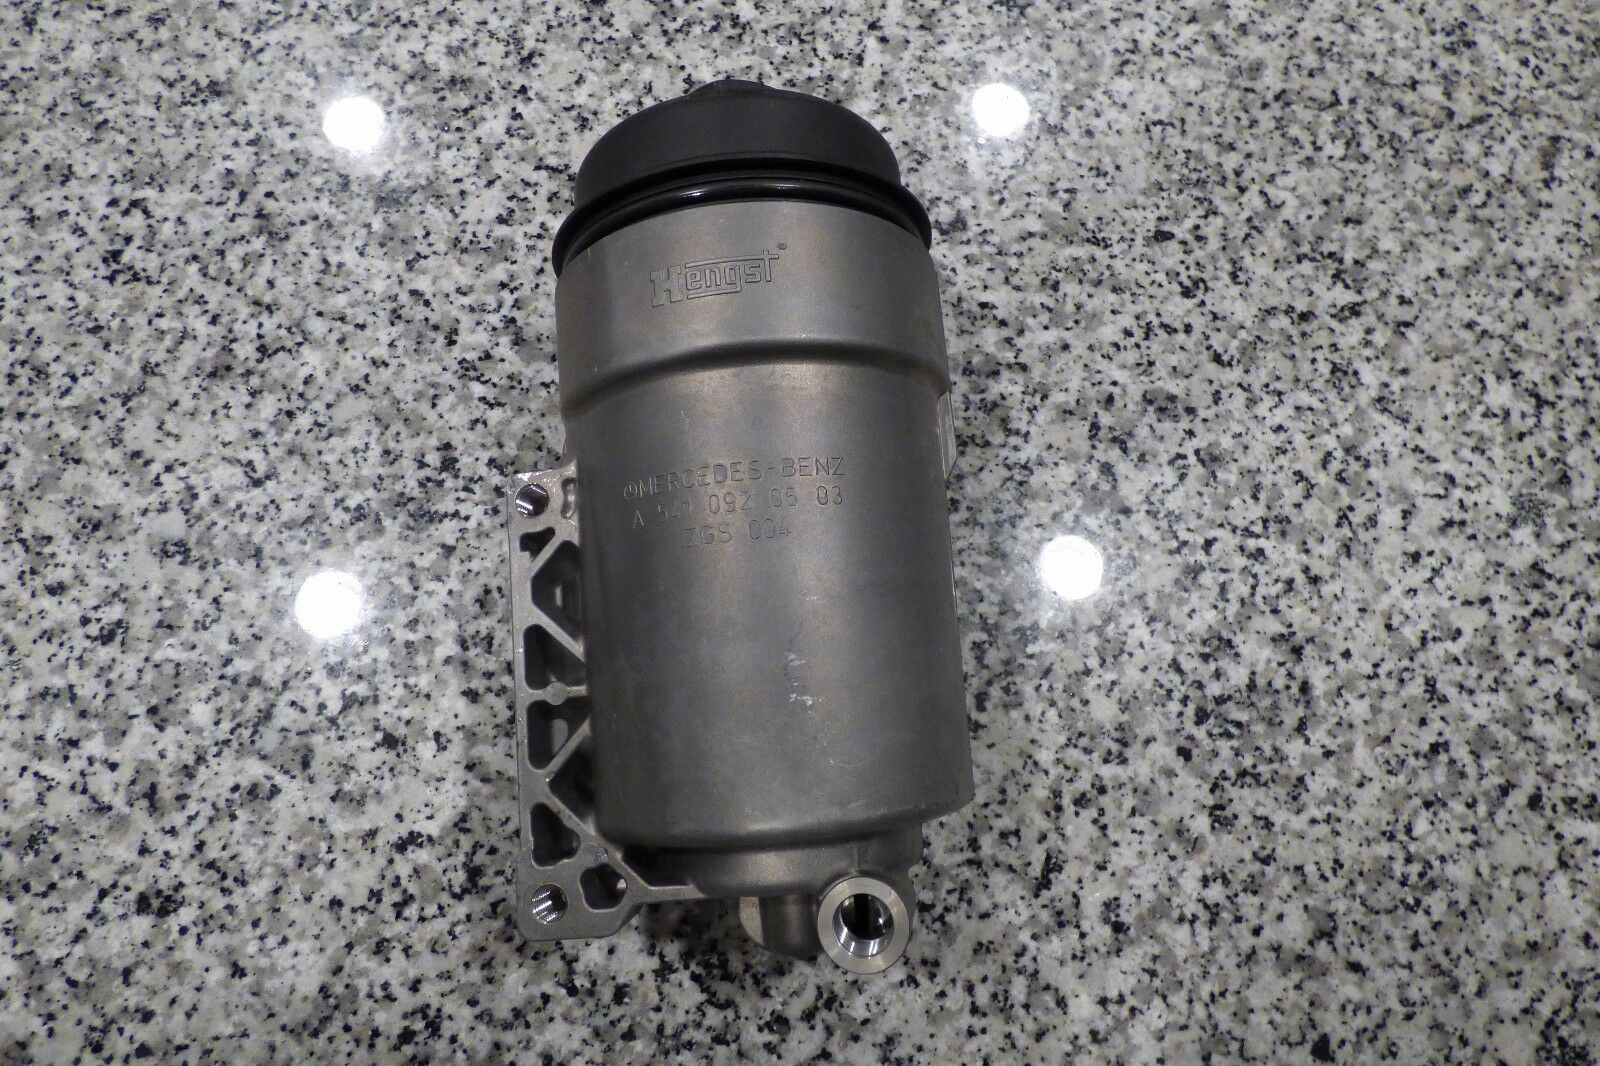 Mercedes Benz Fuel Filter Water Separator A5410920503 A5410920805 Item 3 New Genuine